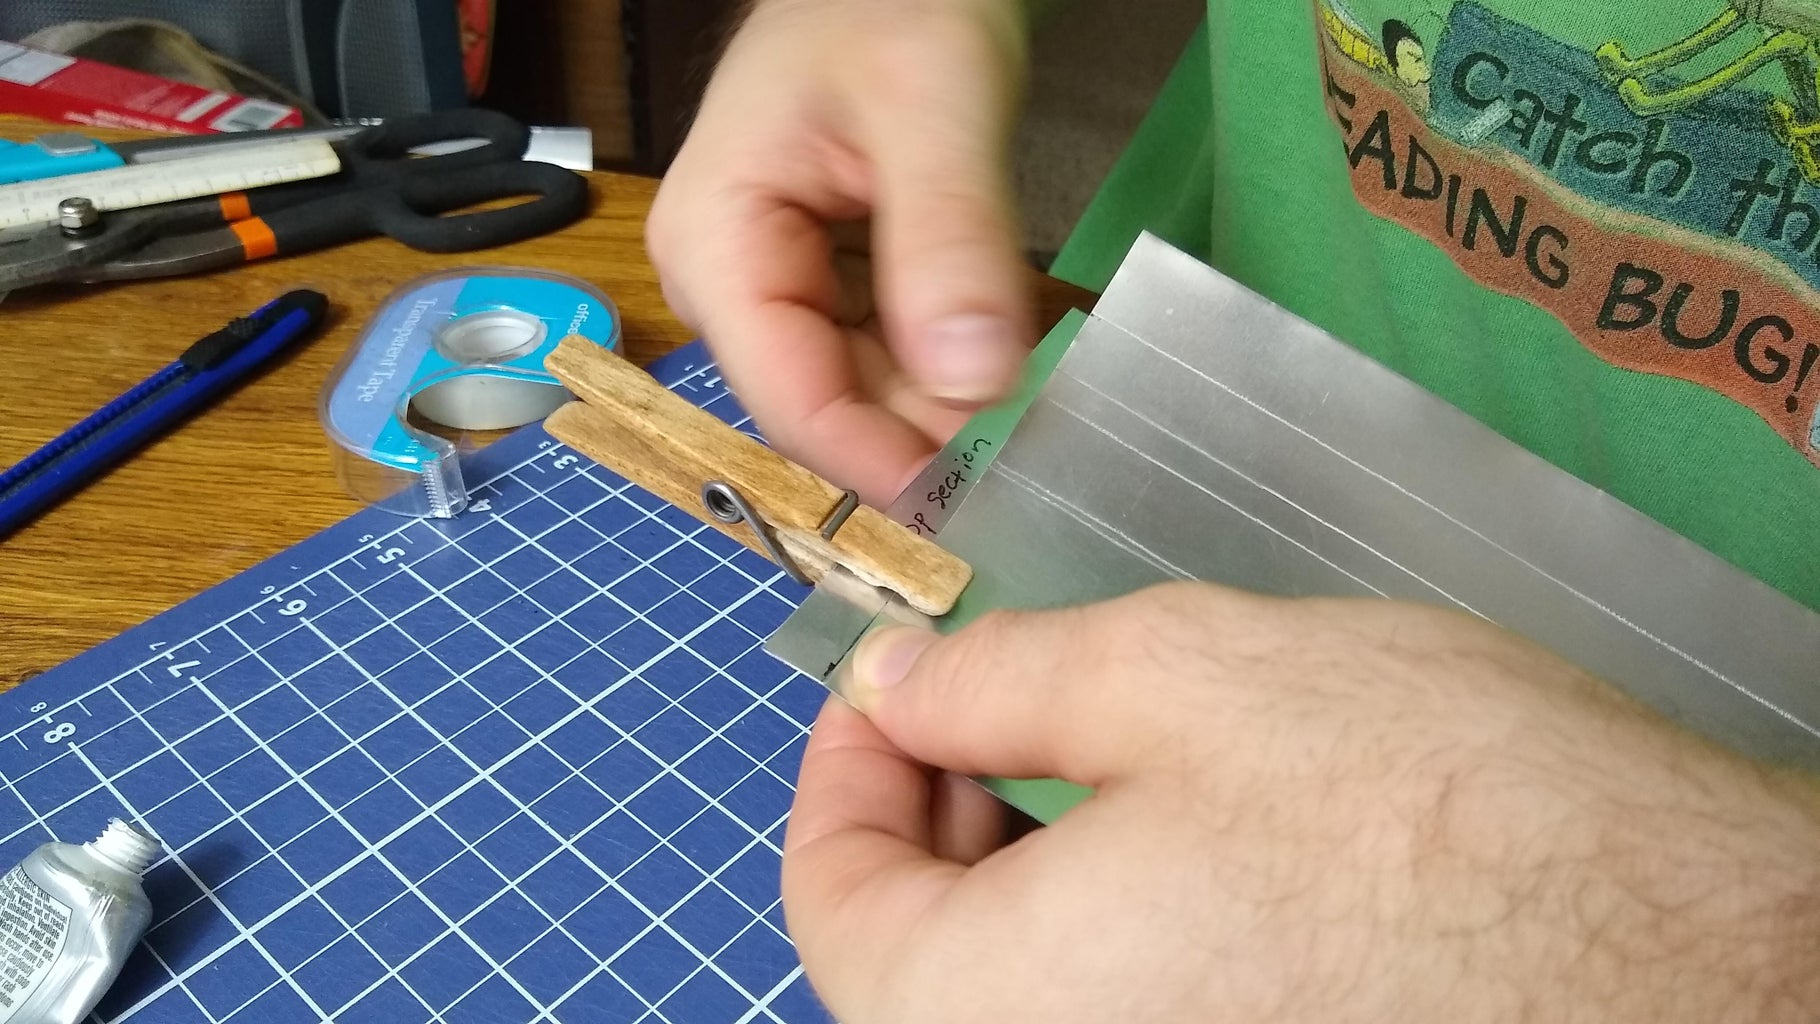 Make the Sheets Into Cylinders